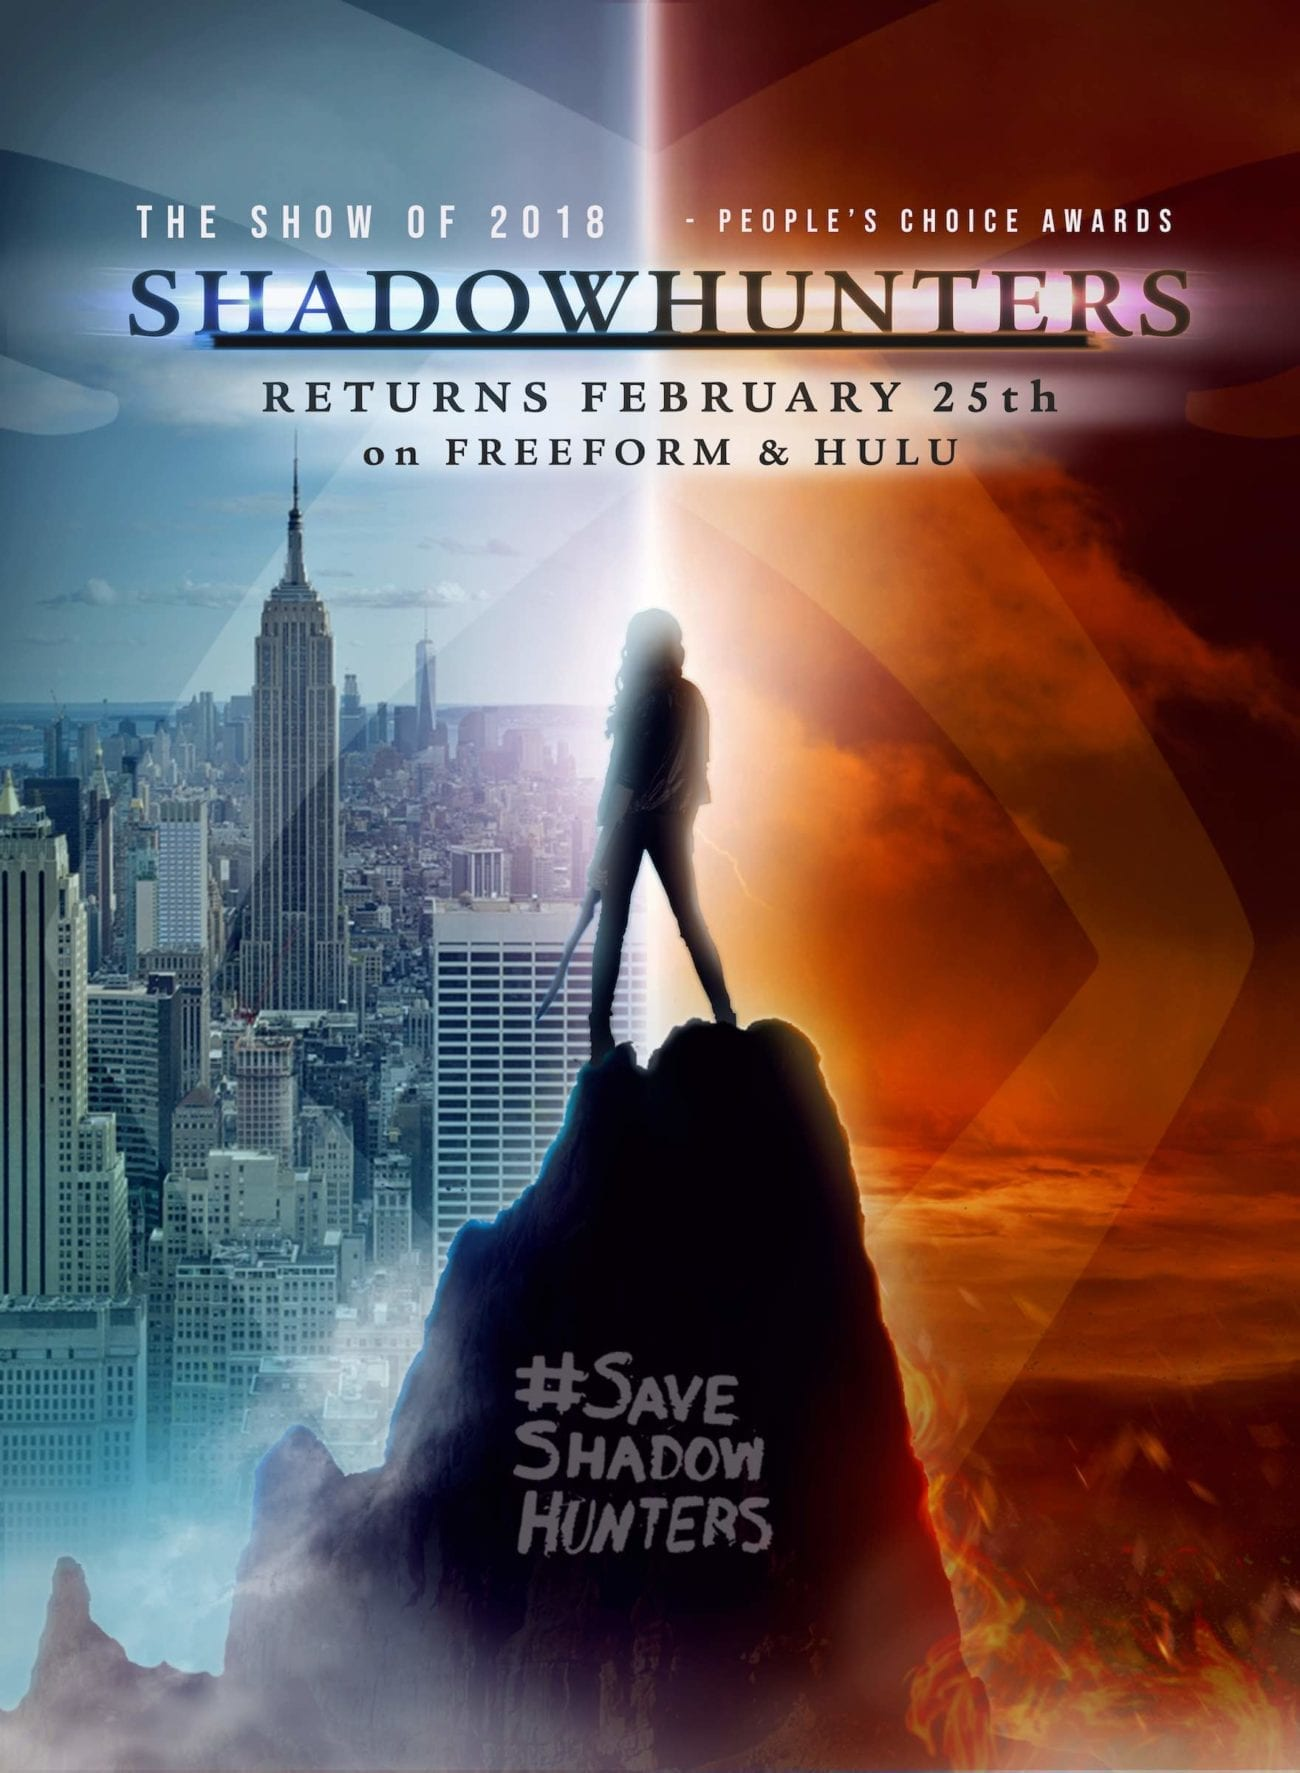 We've partnered with @BoomBitchesSH to help raise awareness around the historic marketing that the Shadowfam have been doing for 'Shadowhunters' season 3B.